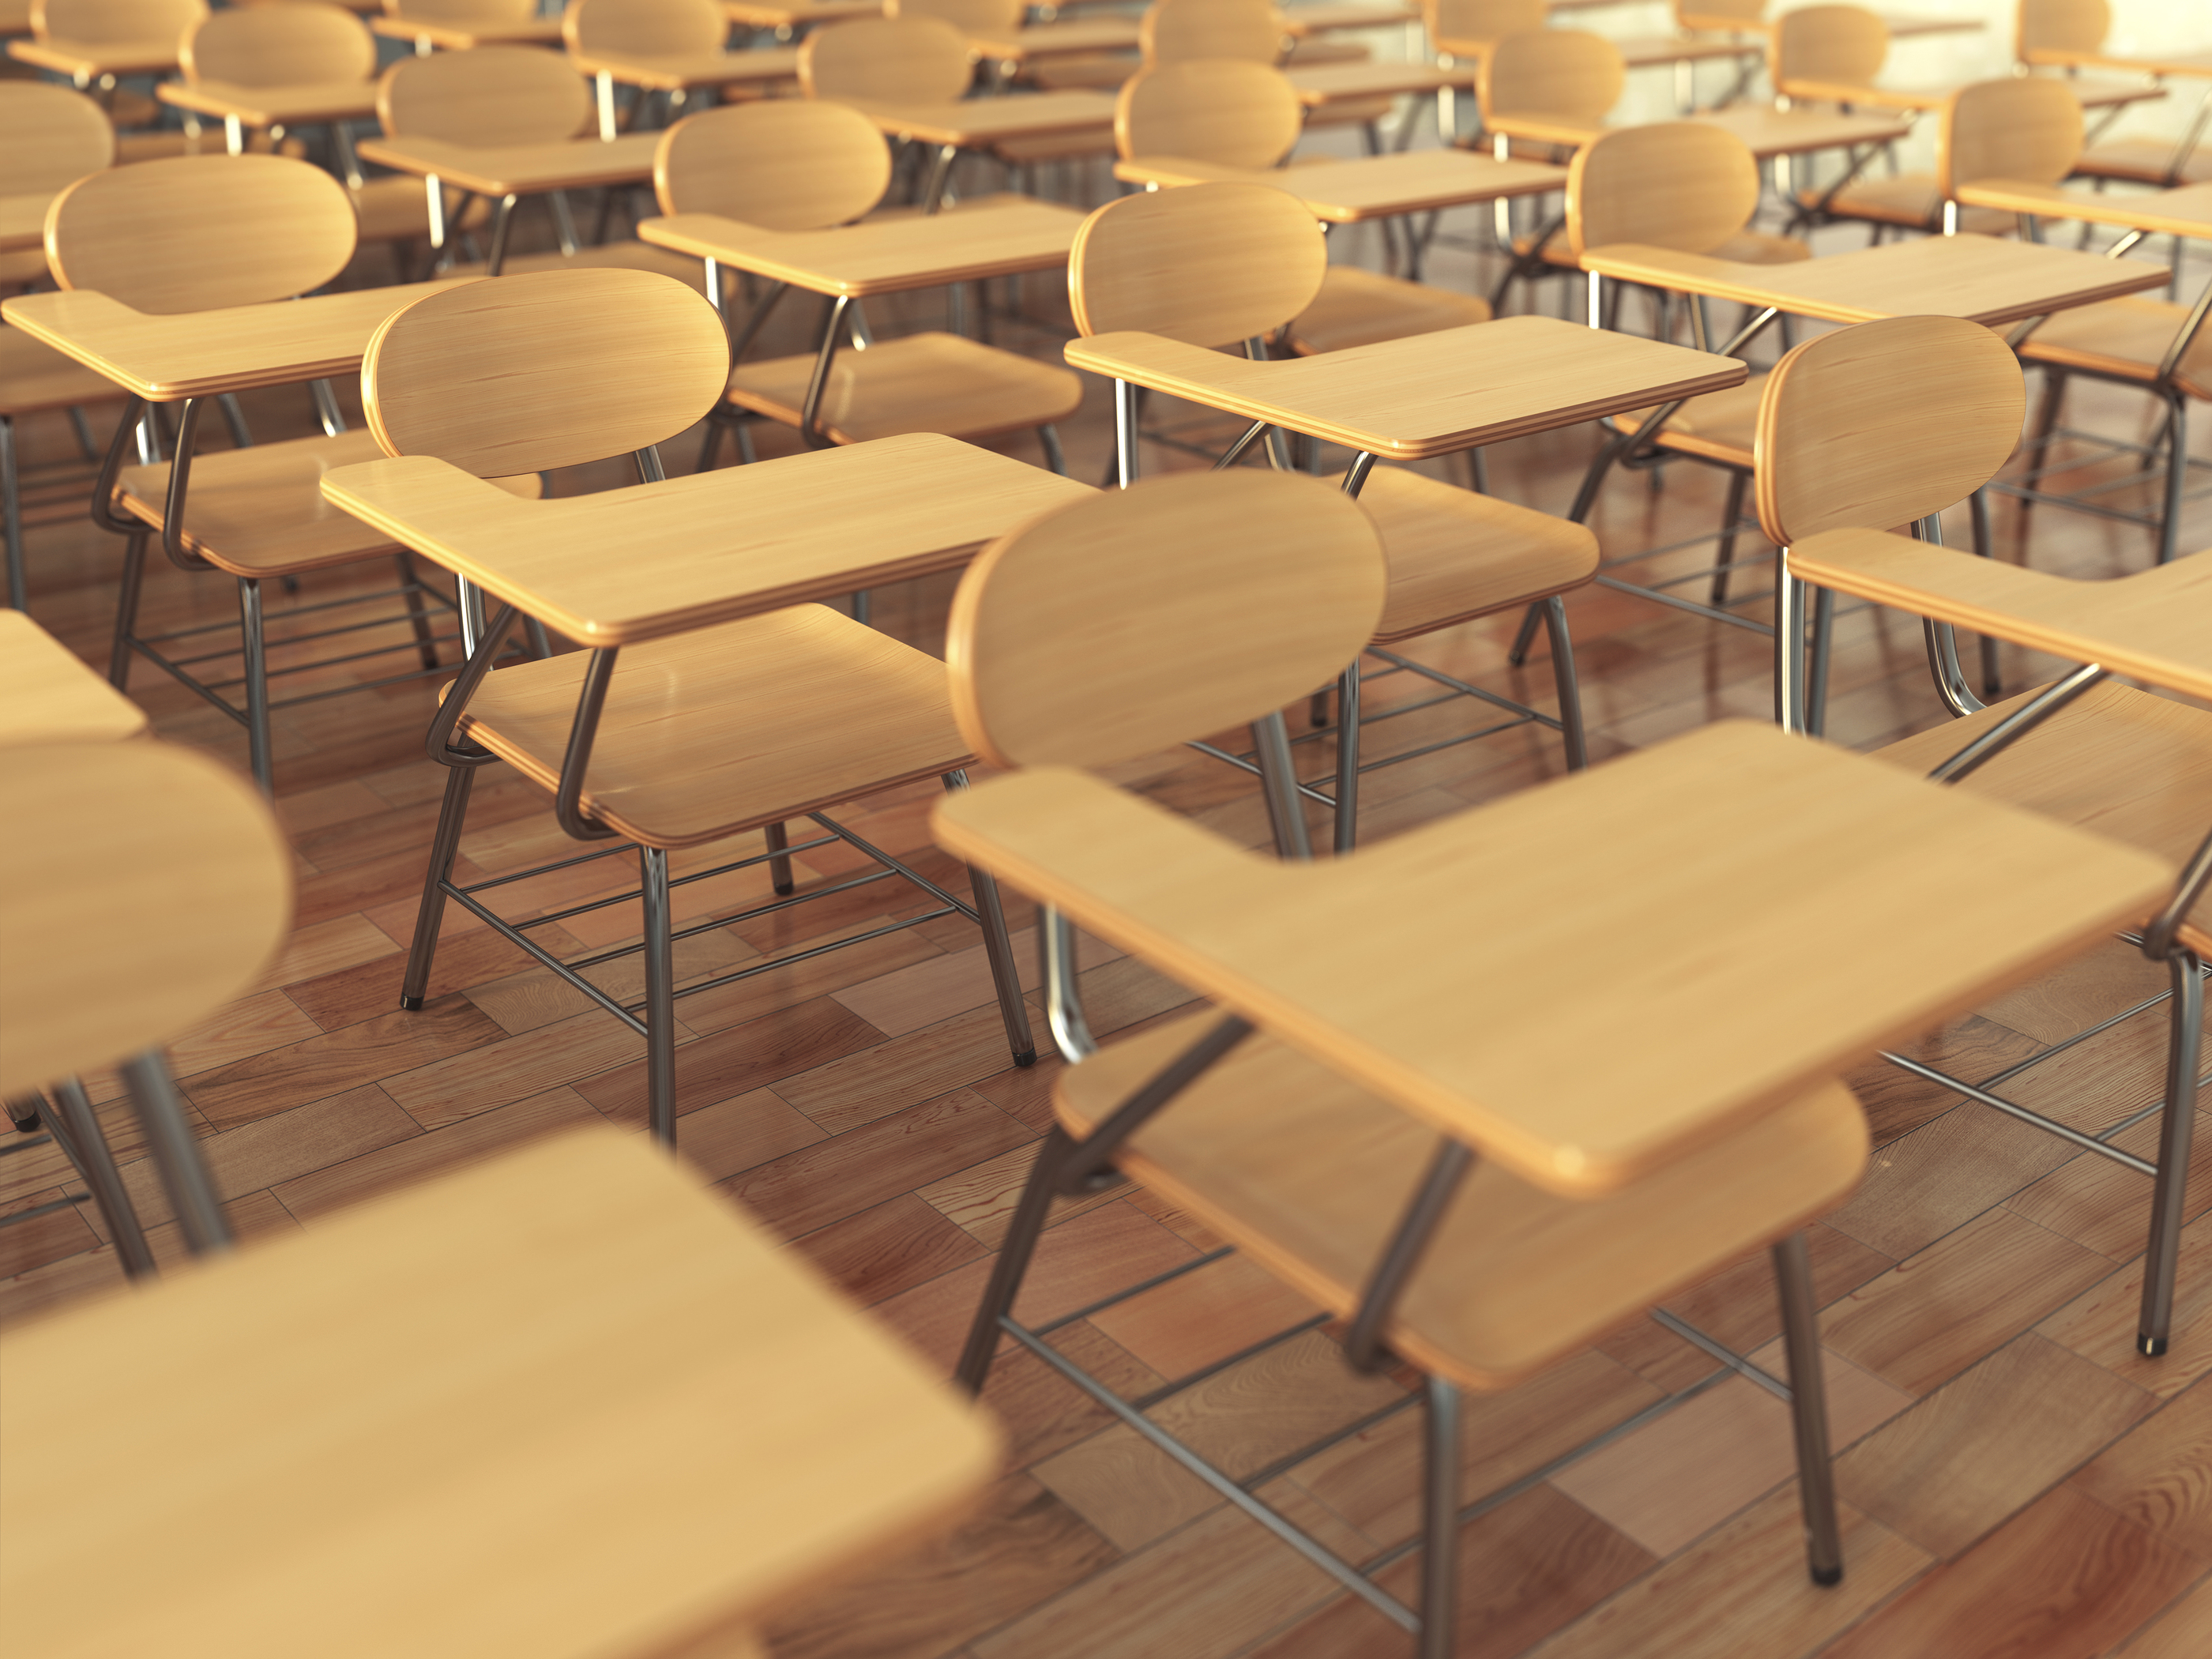 School classroom with empty school chairs and blackboard. Back t